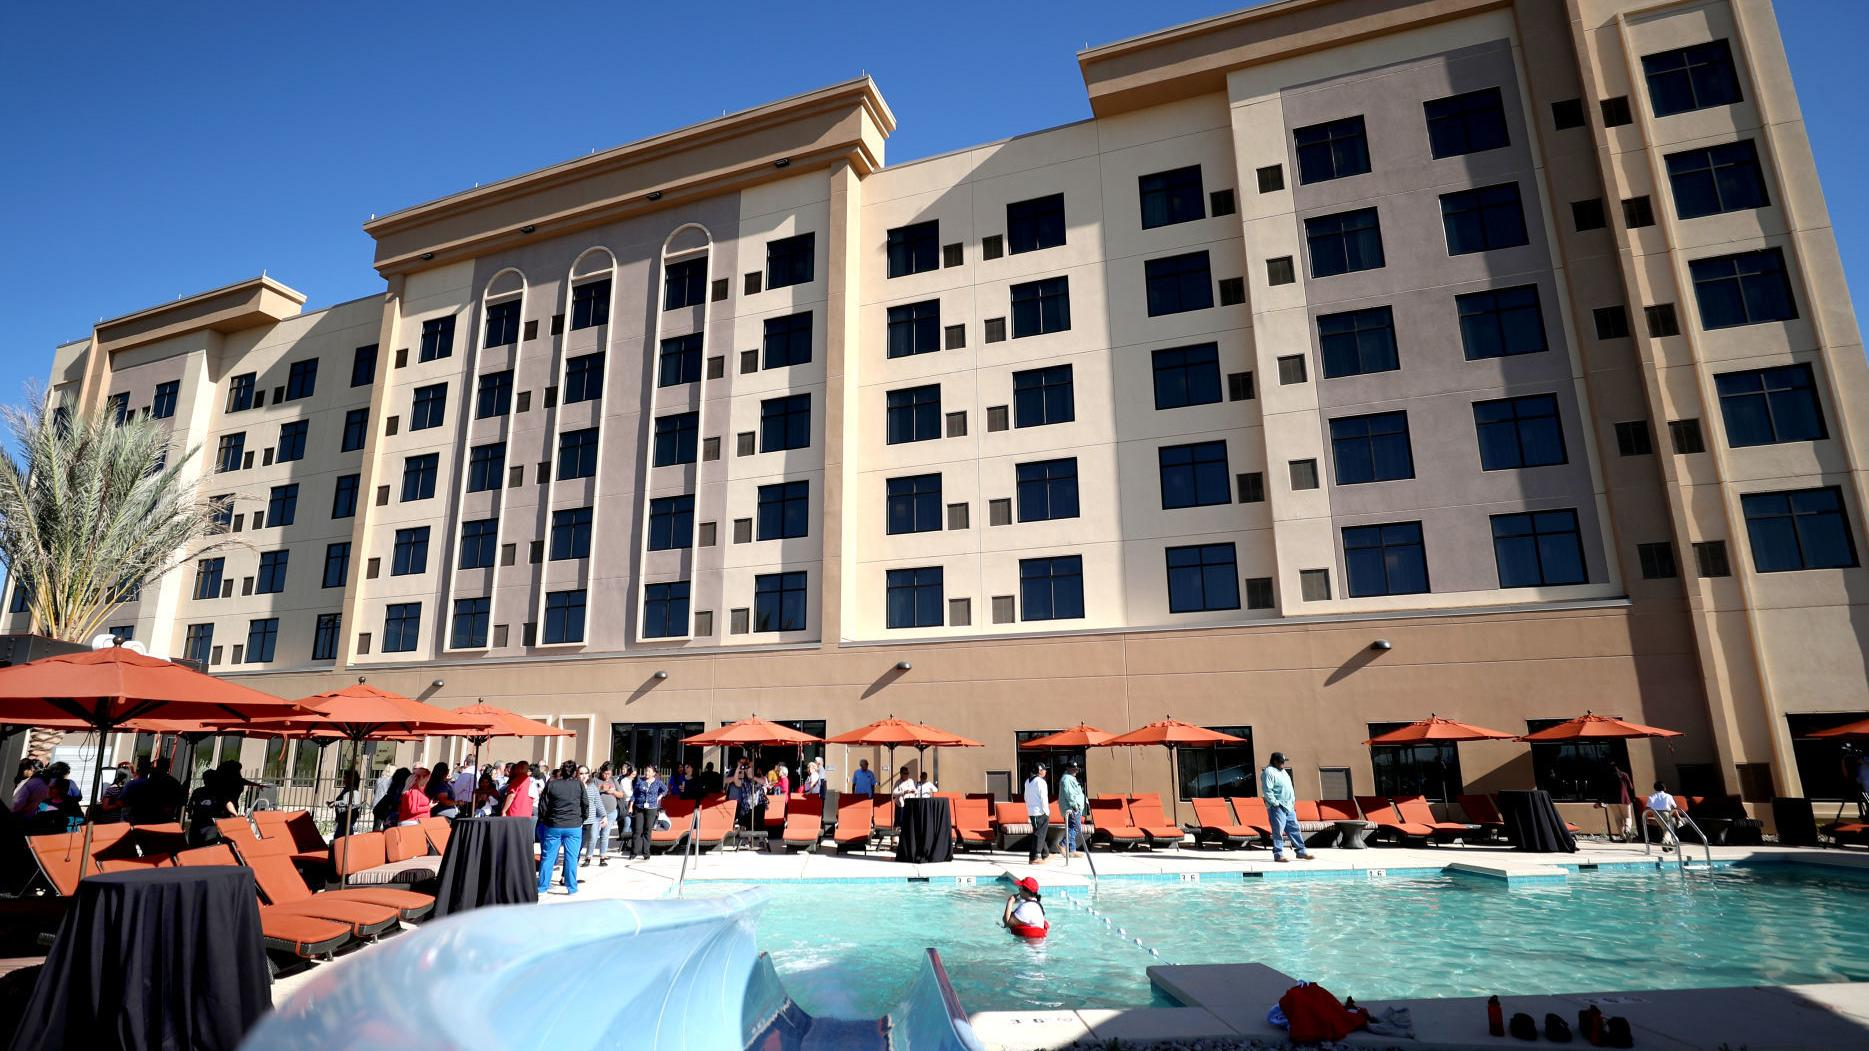 Casino Del Sol S New Hotel Is Now Open With A Water Slide Pool Bar And Arcade Business News Tucson Com